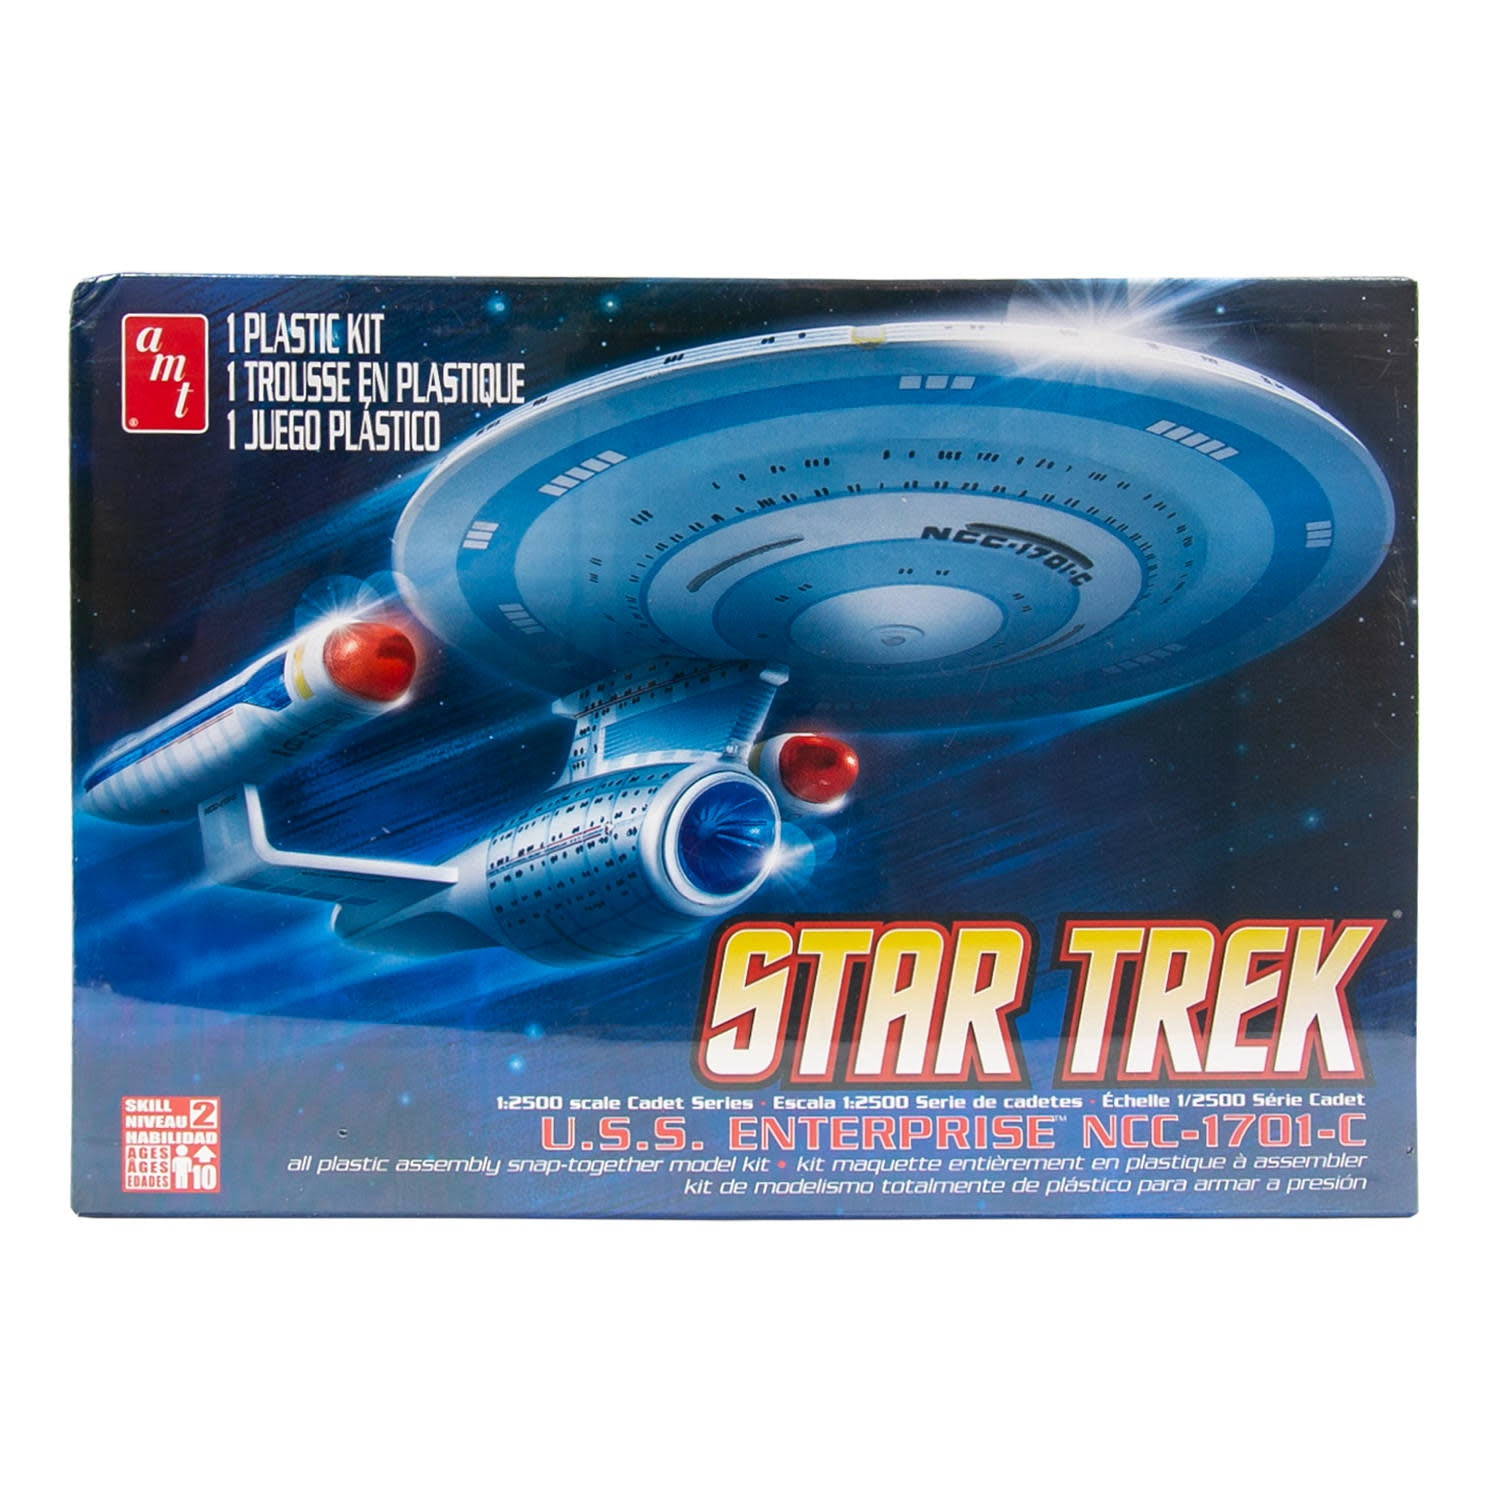 Star Trek Enterprise 1701-C (1/2500)